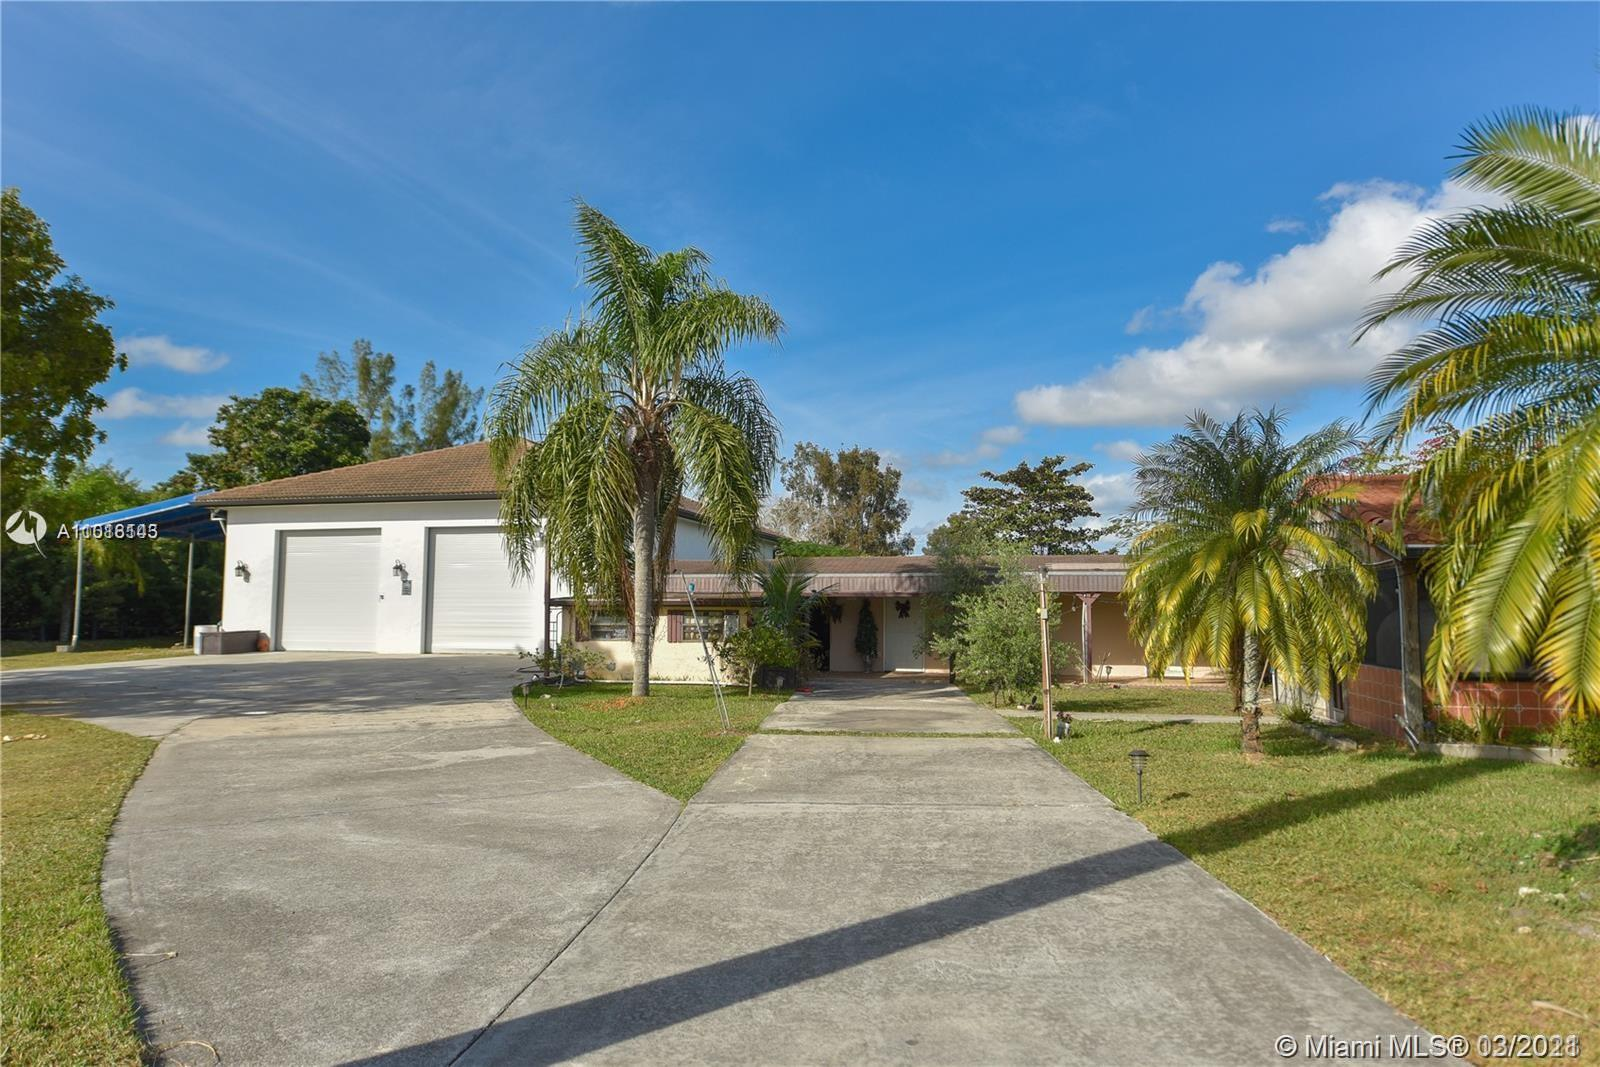 19101 SW 57th Ct, Southwest Ranches, Florida 33332